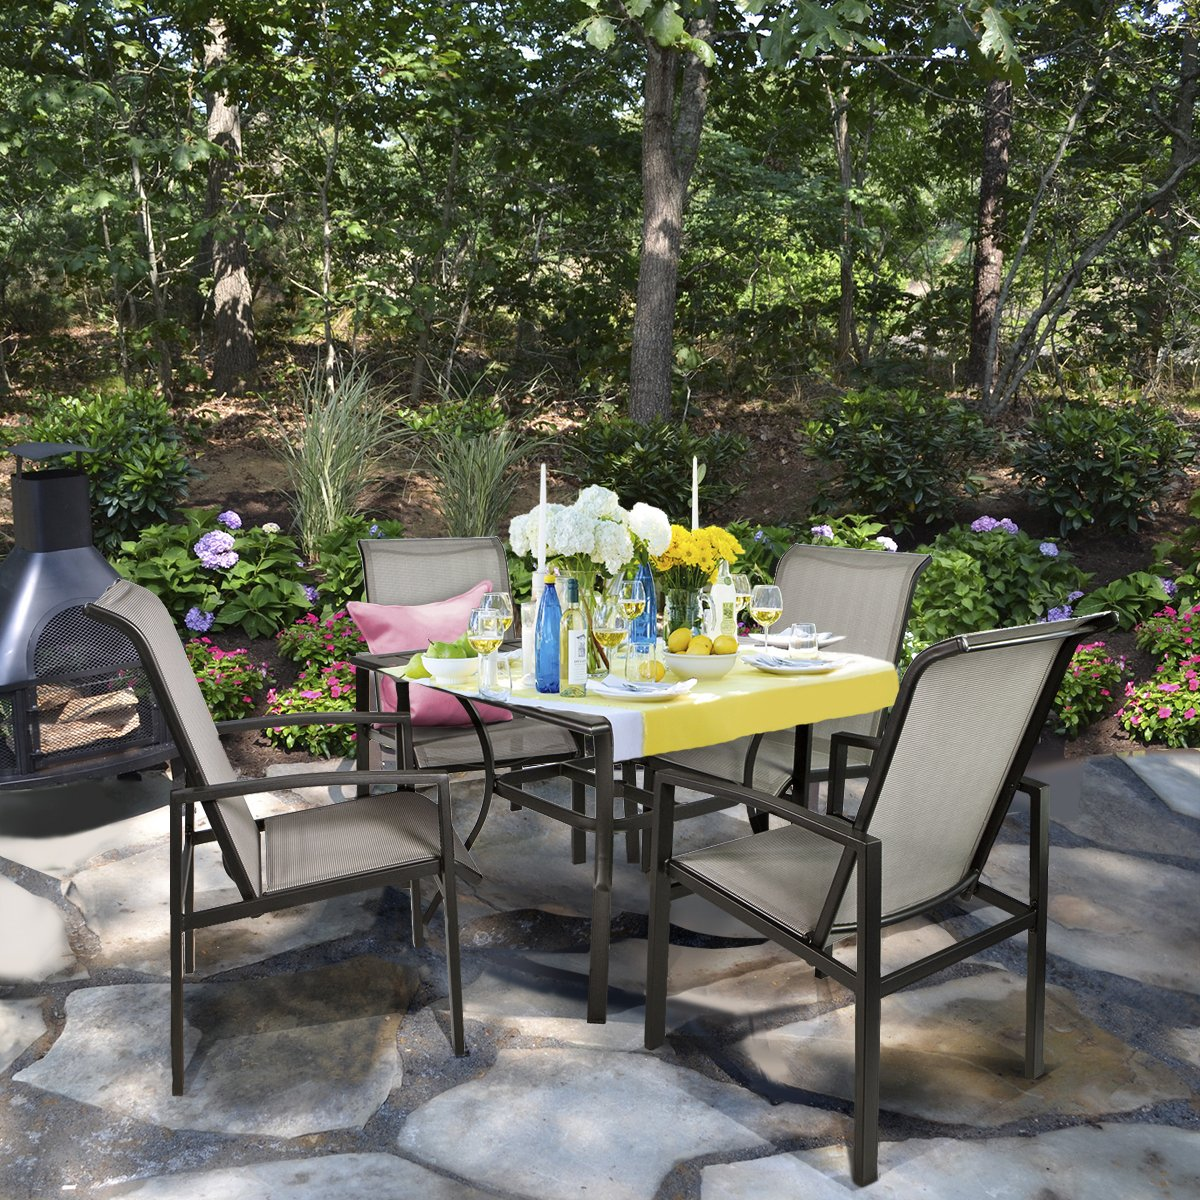 Barton 5-Piece Outdoor Dining Set Square Patio 1 Table Mesh Dining 4 Chairs Yard Patio Furniture Garden UV-Resistant by Barton